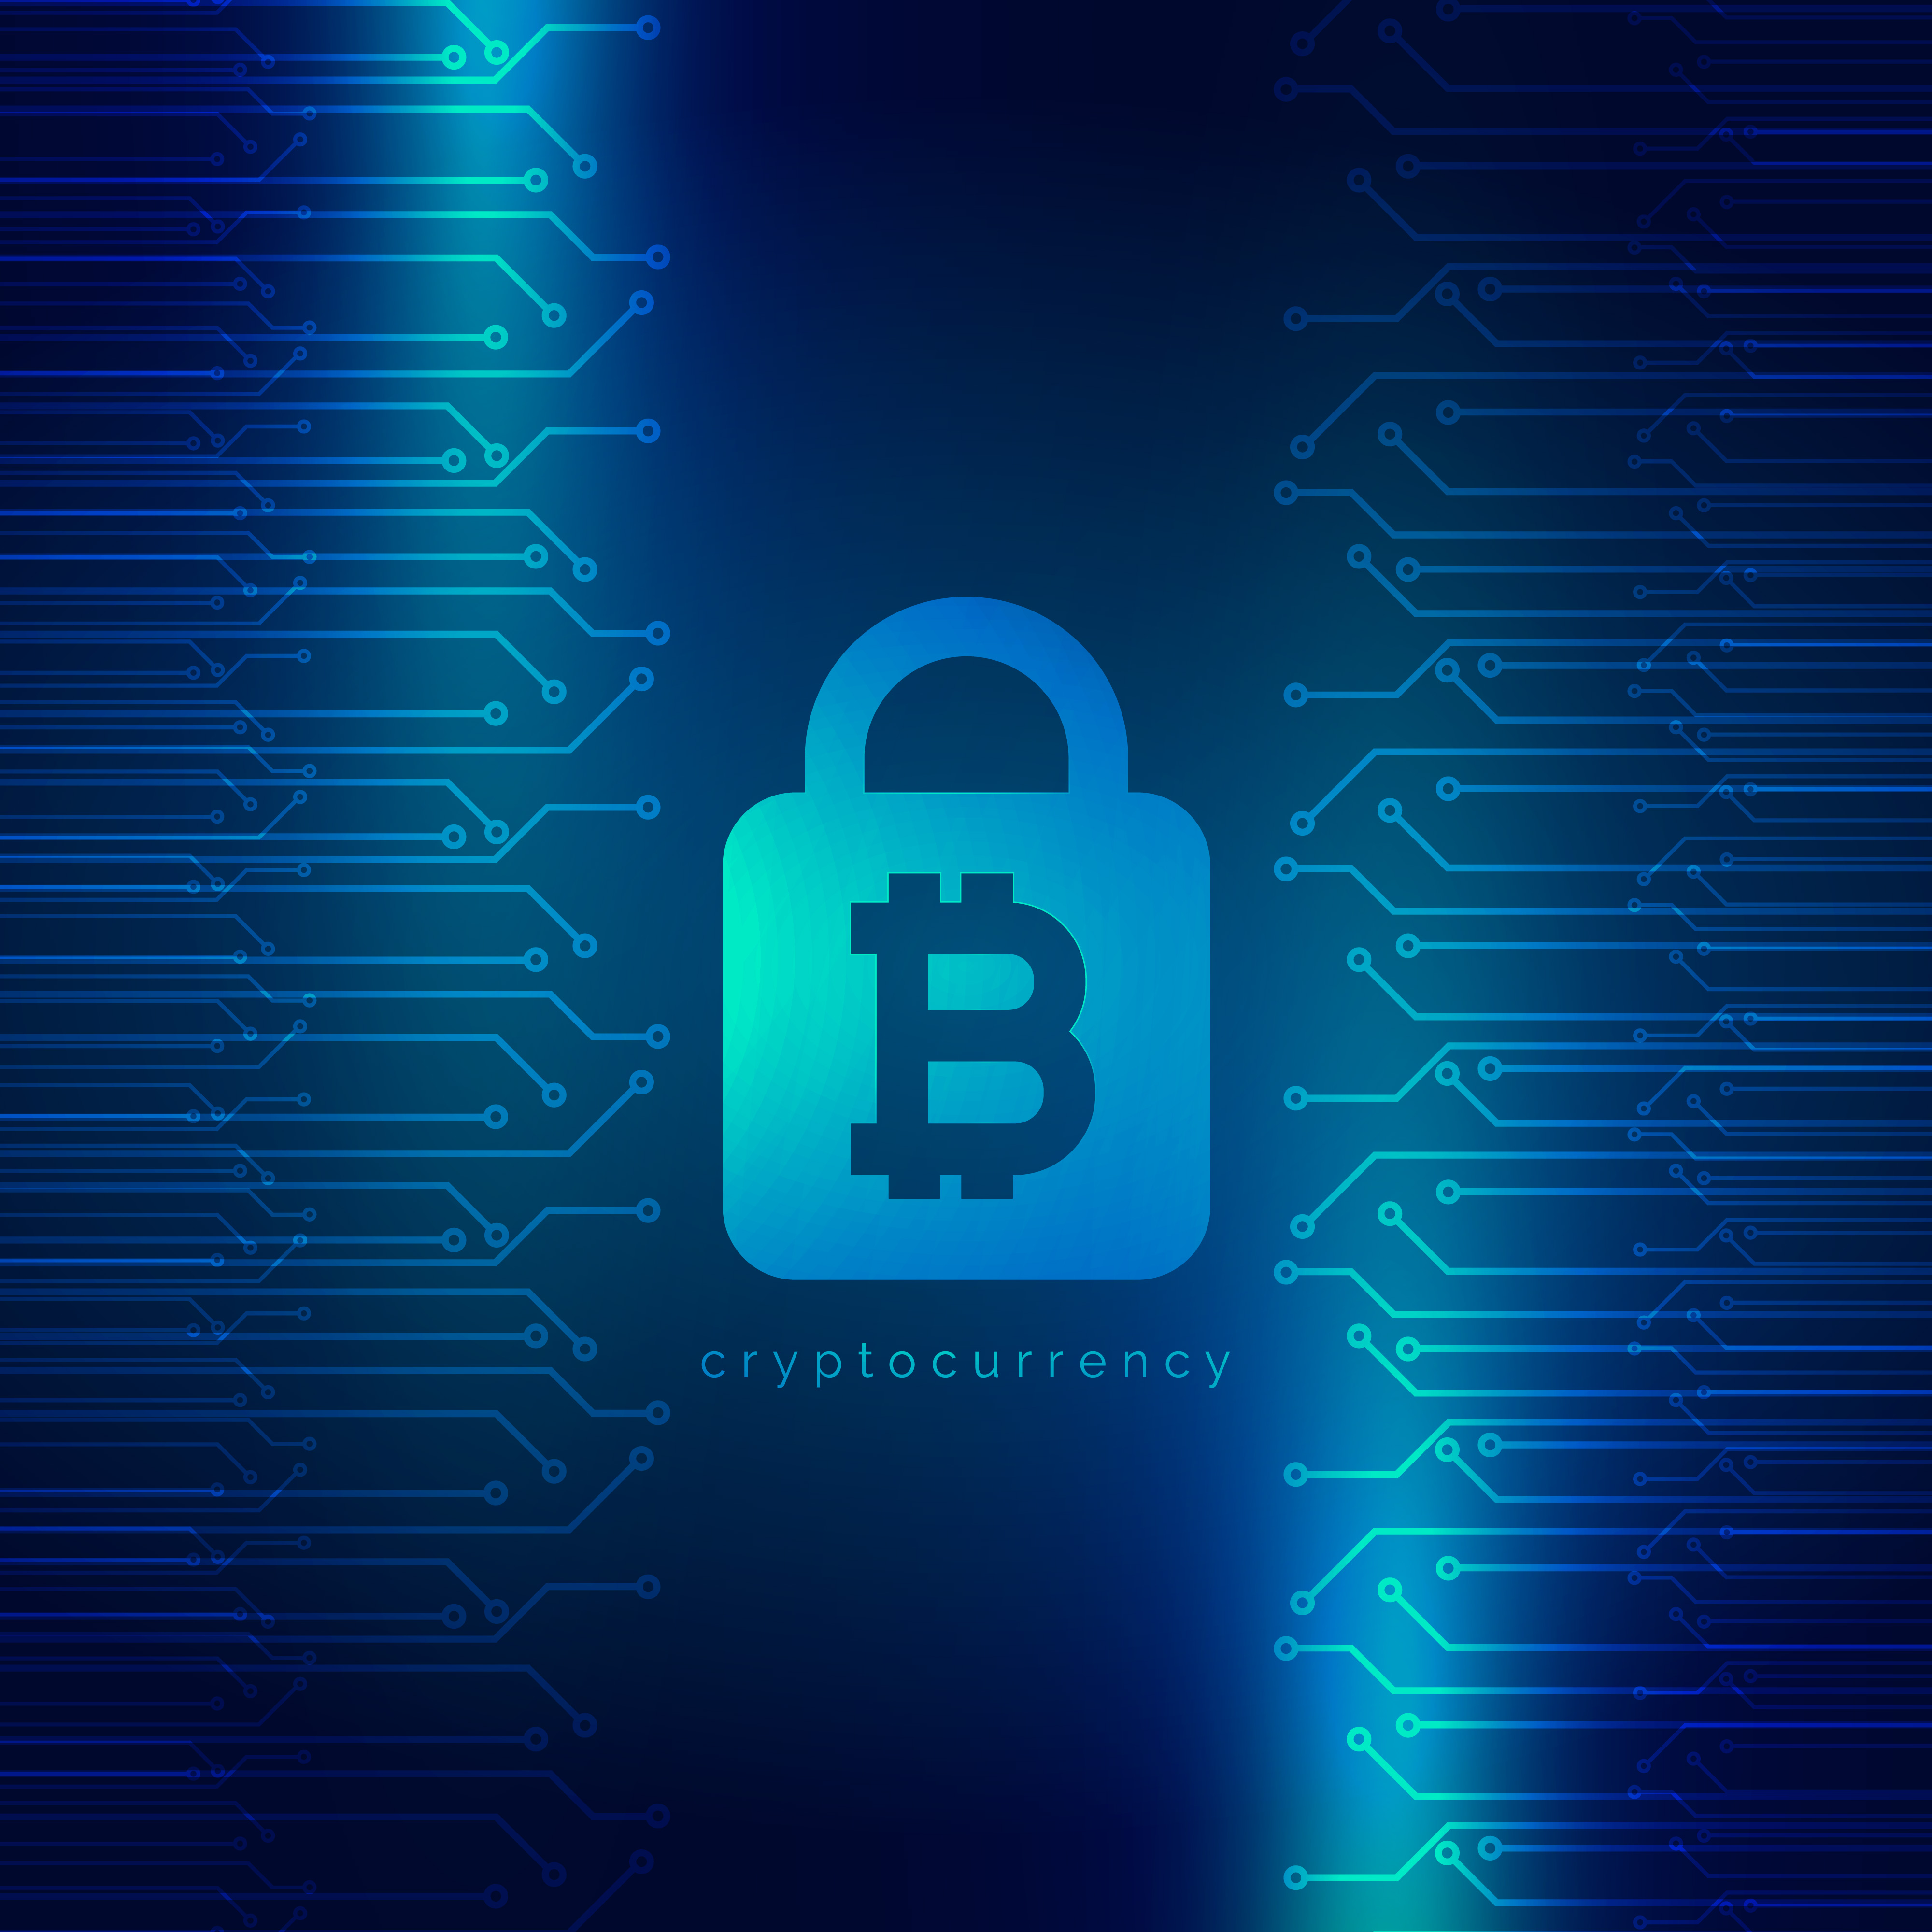 Crypto Wallpaper 3d Secured Digital Internet Cryptocurrency Bitcoin Background